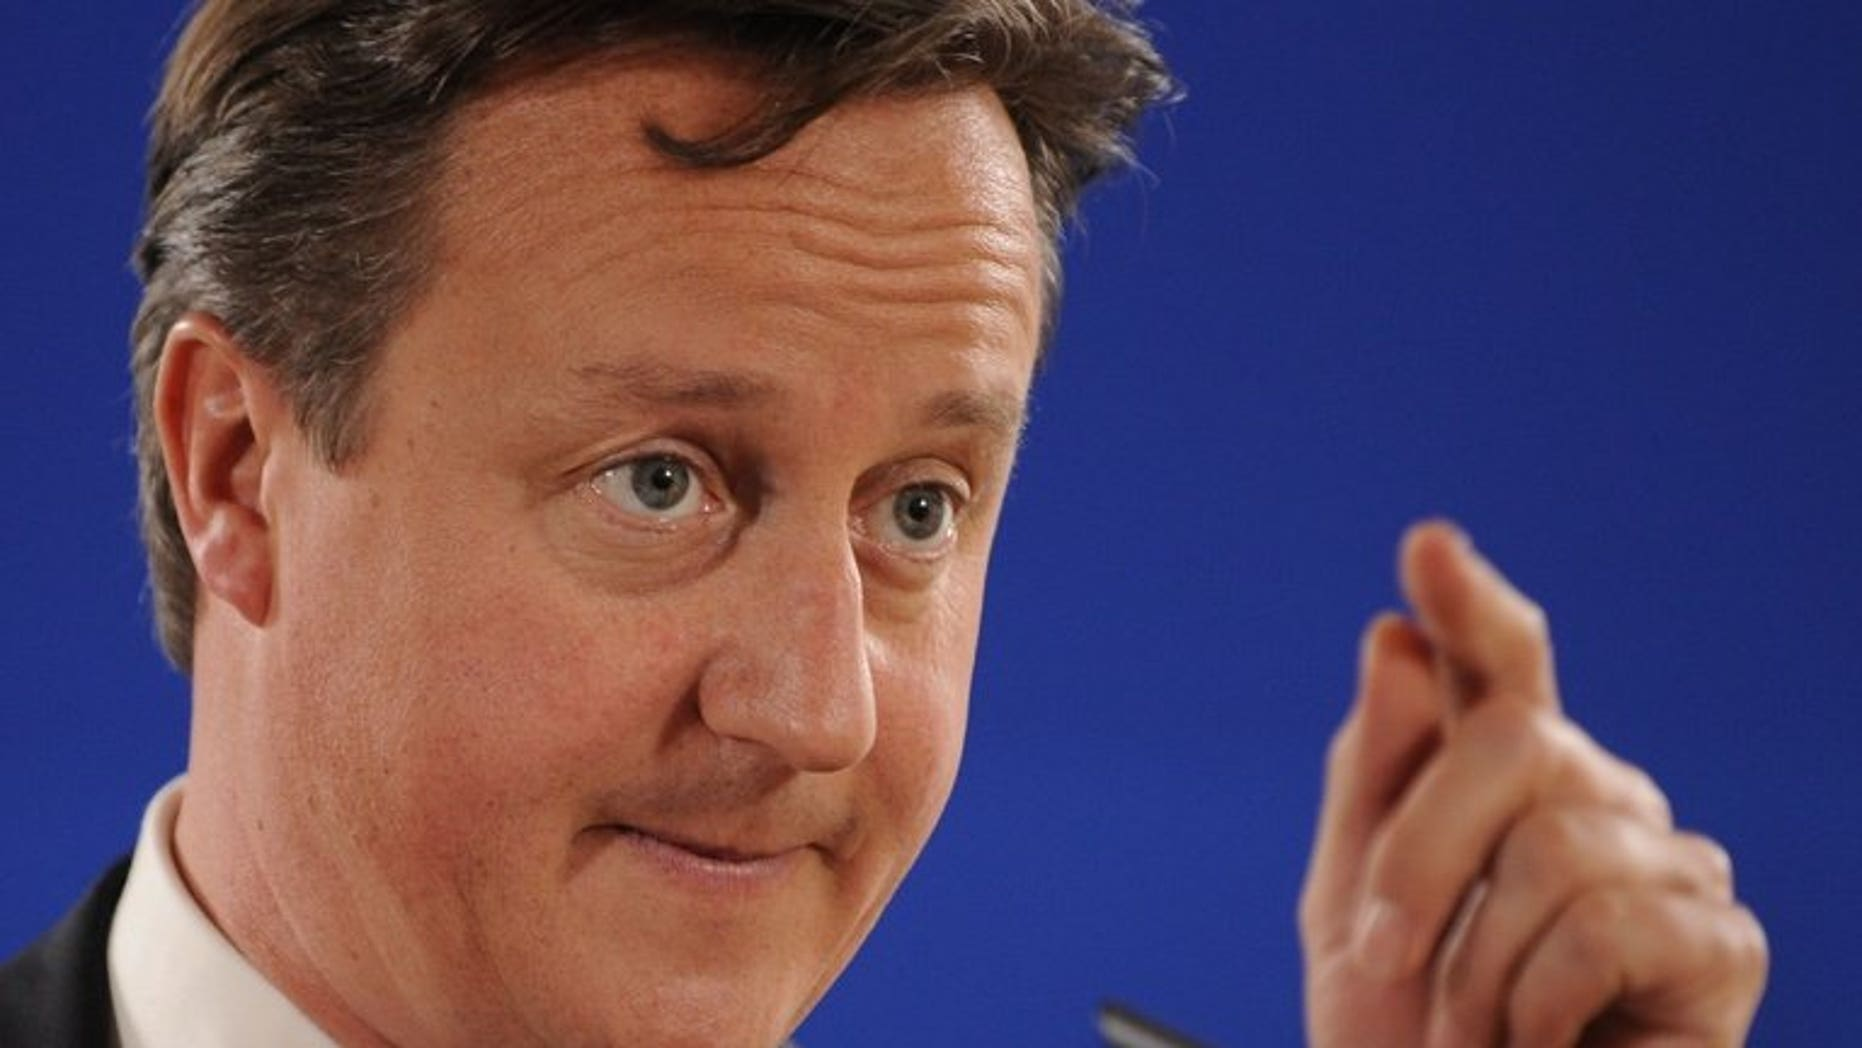 British Prime Minister David Cameron attends a news conference in Brussels on June 28, 2013. Cameron arrived in Kazakhstan on the first ever trip by a serving British prime minister, hoping to boost trade ties but also promising to raise human rights concerns.